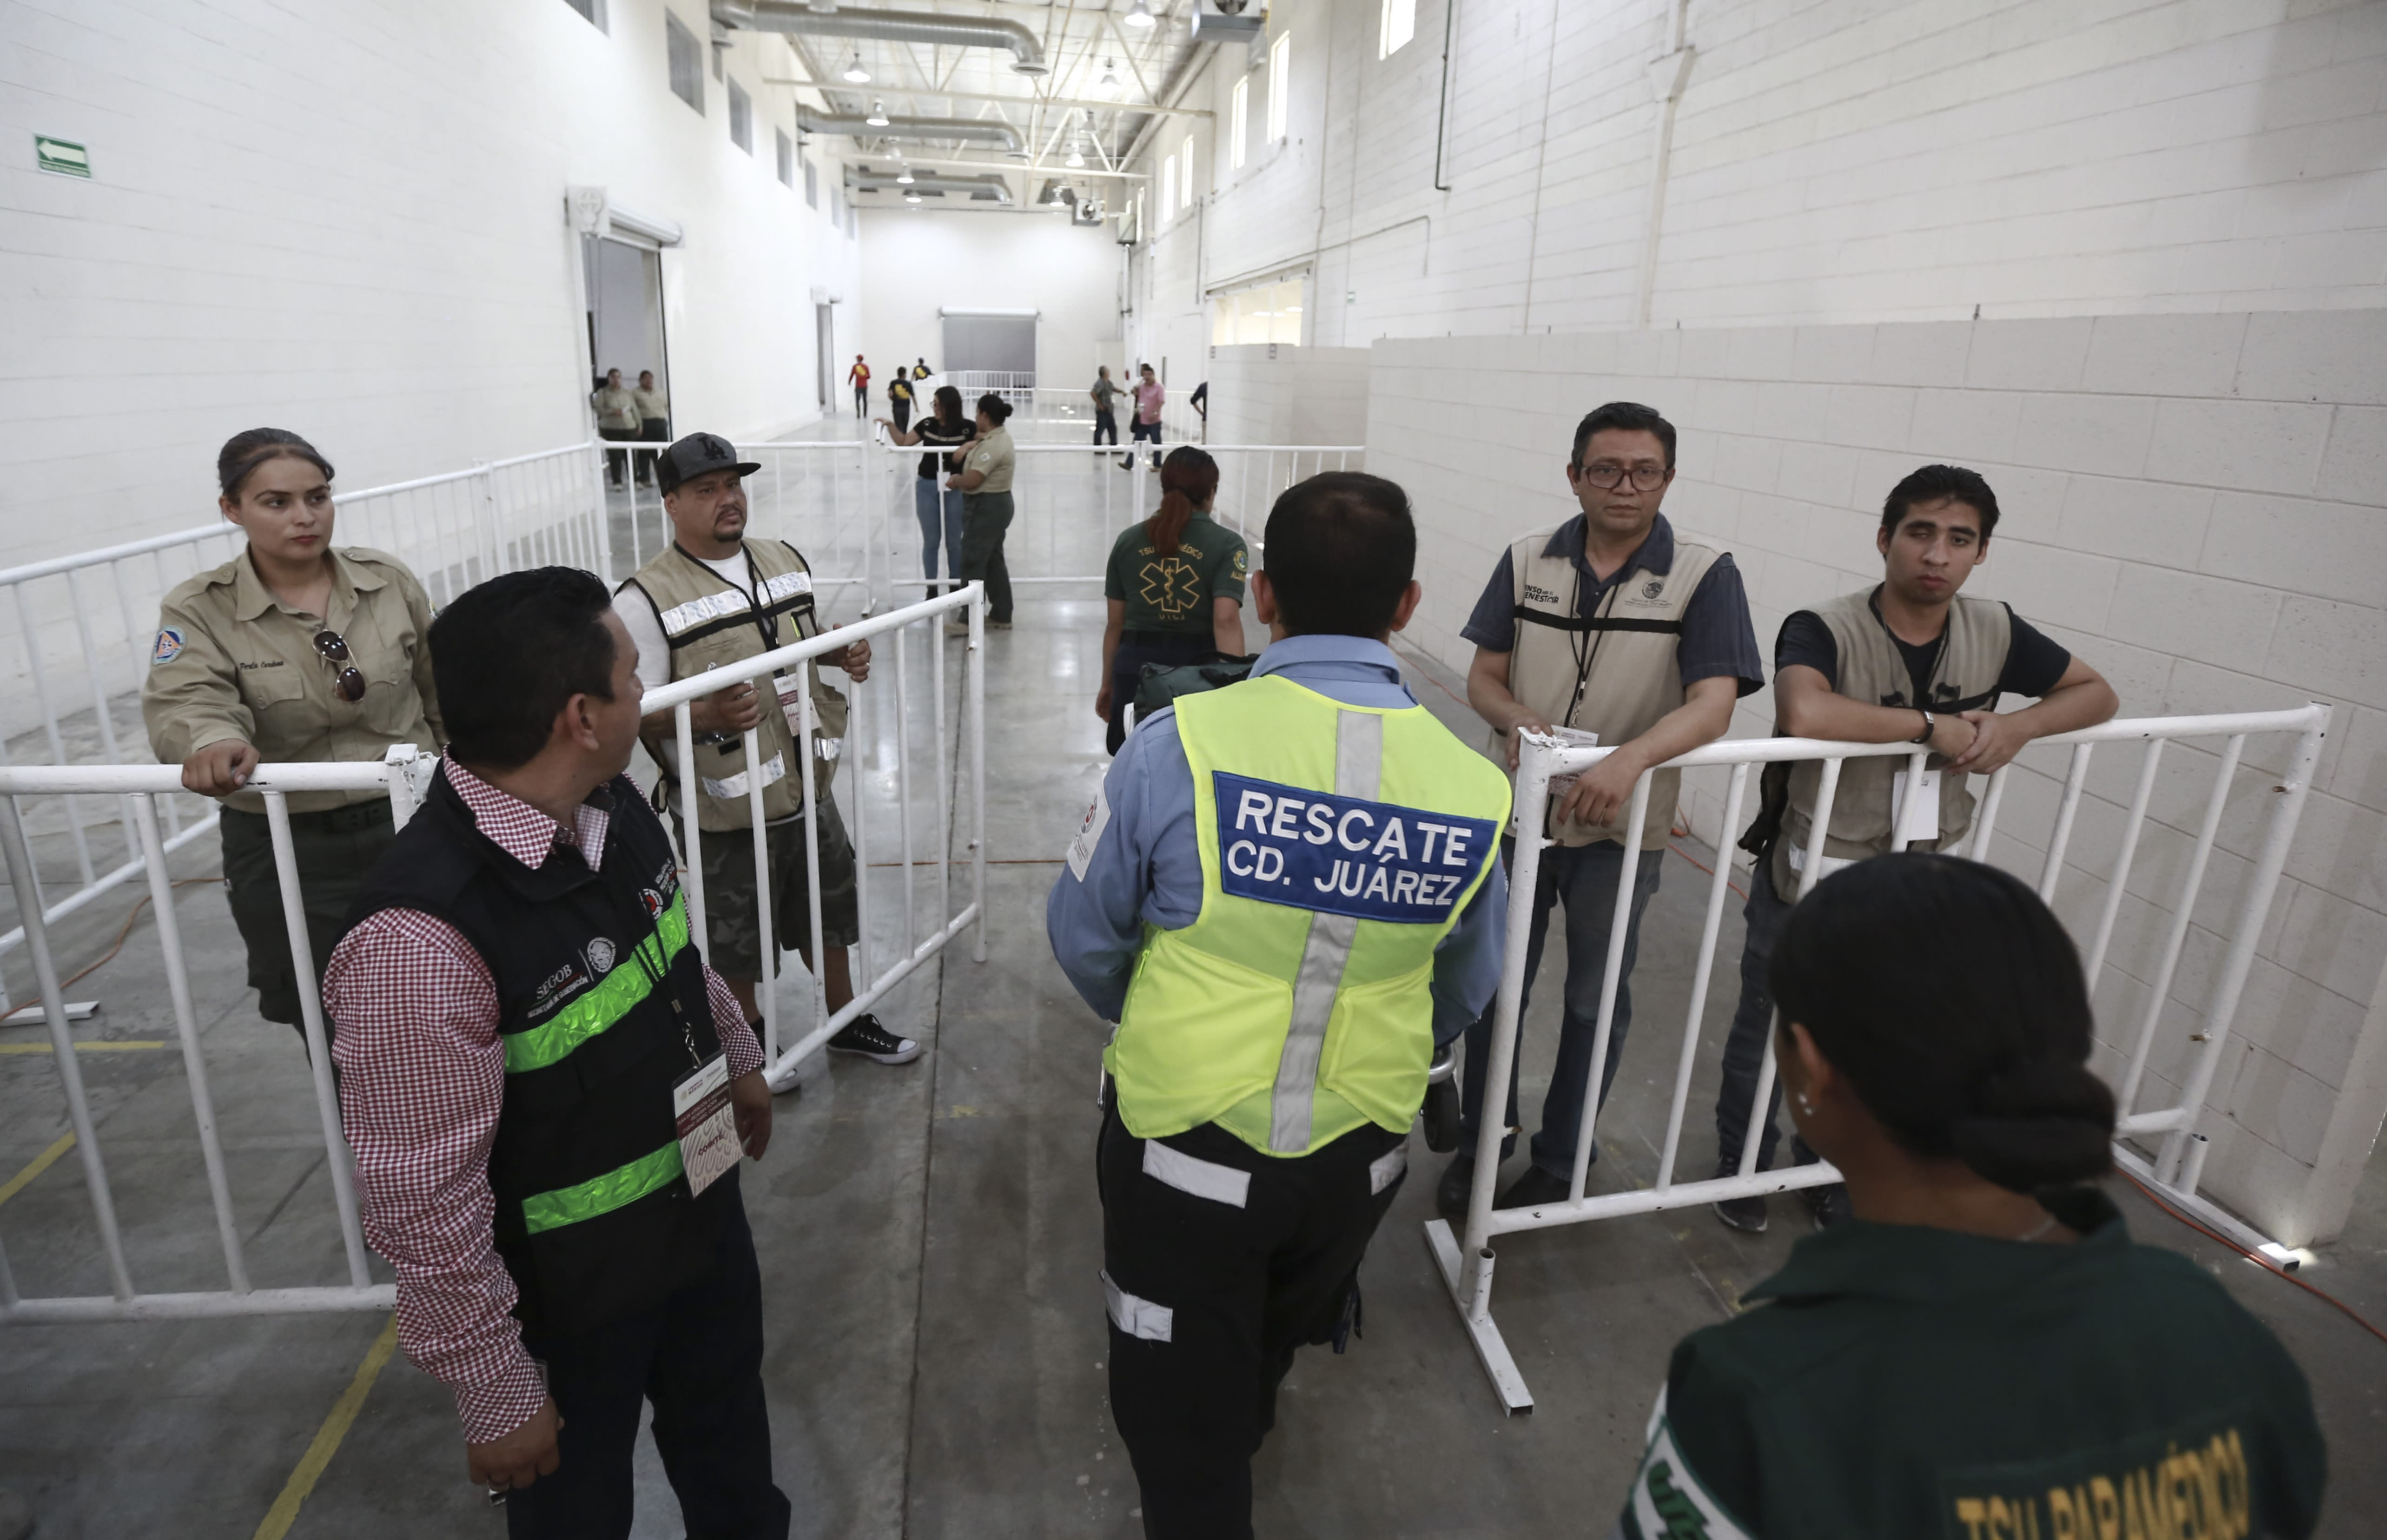 Mexican government workers walk inside the newly opened migrant shelter, formerly an assembly plant, in Ciudad Juarez, Mexico, Thursday, Aug. 1, 2019. The Mexican government opened its first shelter here to house Central American and other migrants seeking asylum in the United States who have been sent back to Mexico to await the process. (AP Photo/Christian Chavez)